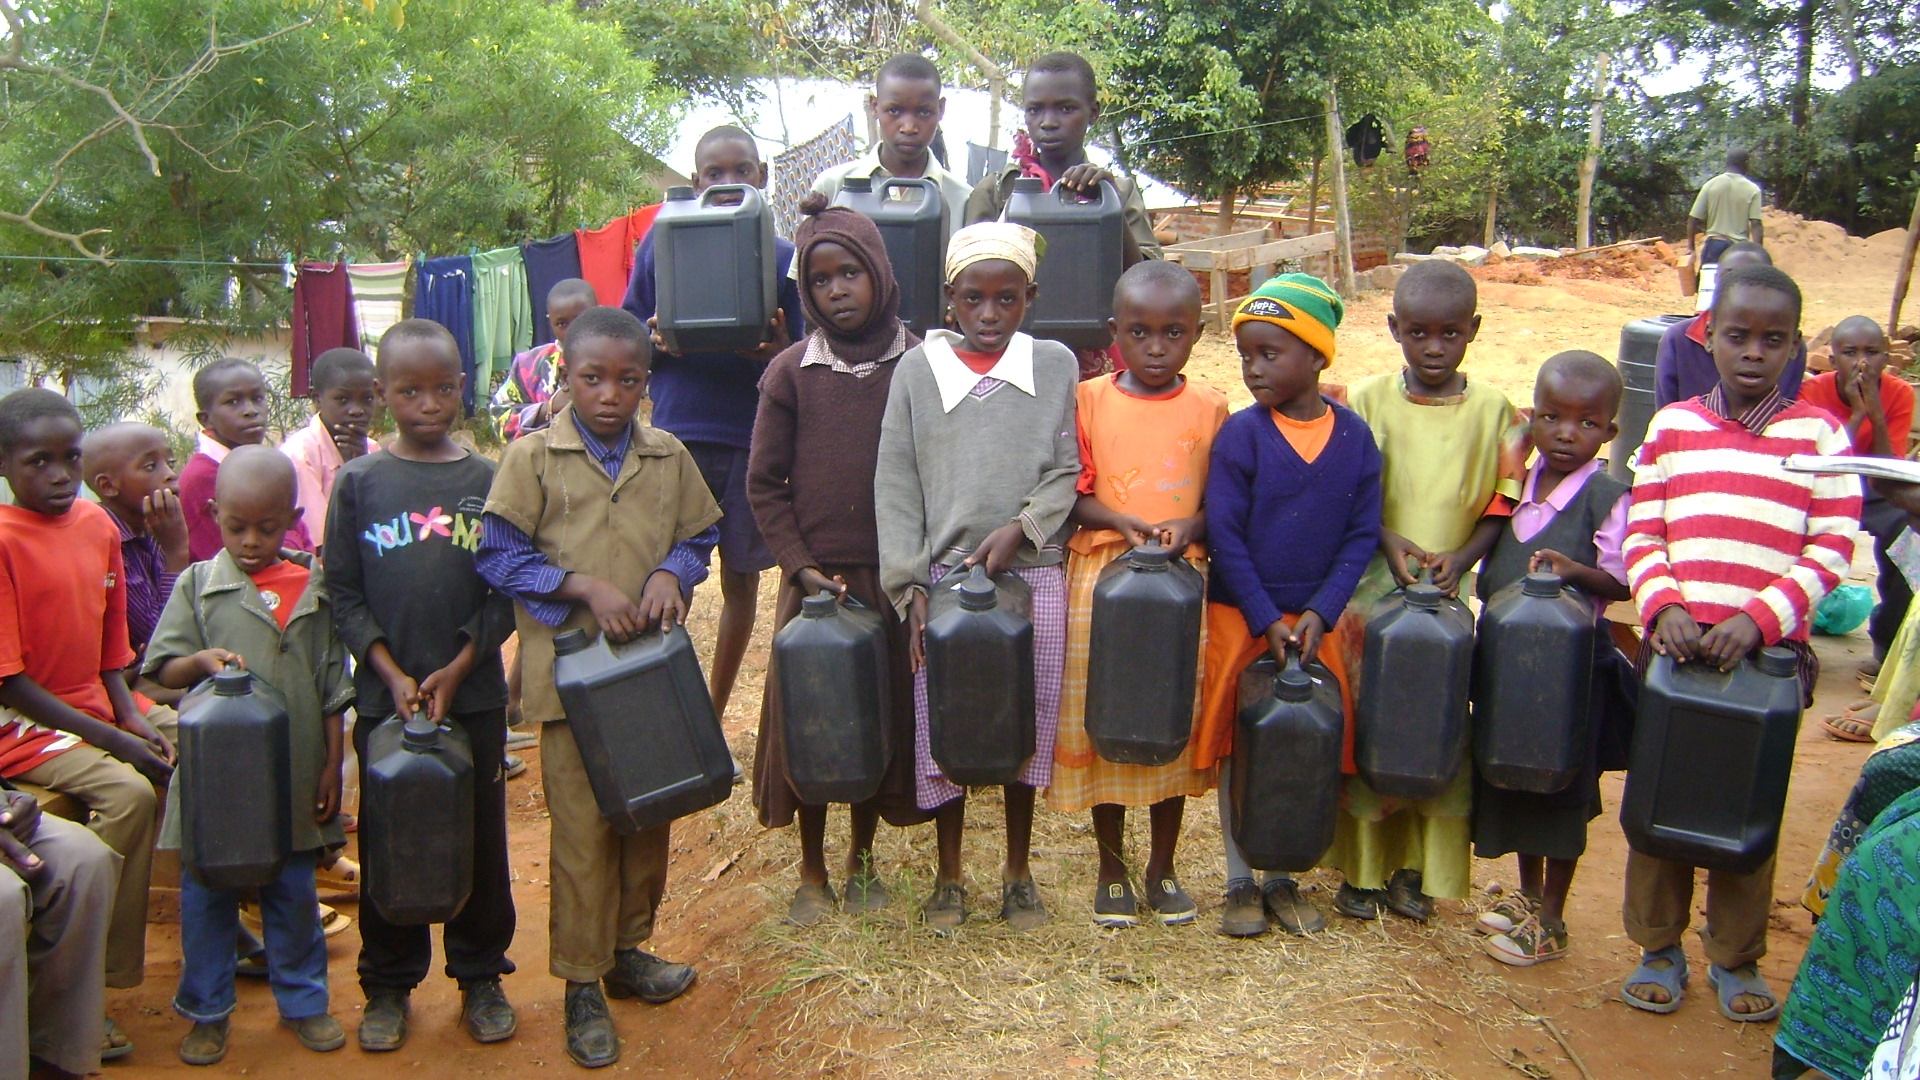 Each child received a jerrycan to go and fetch water for their goat